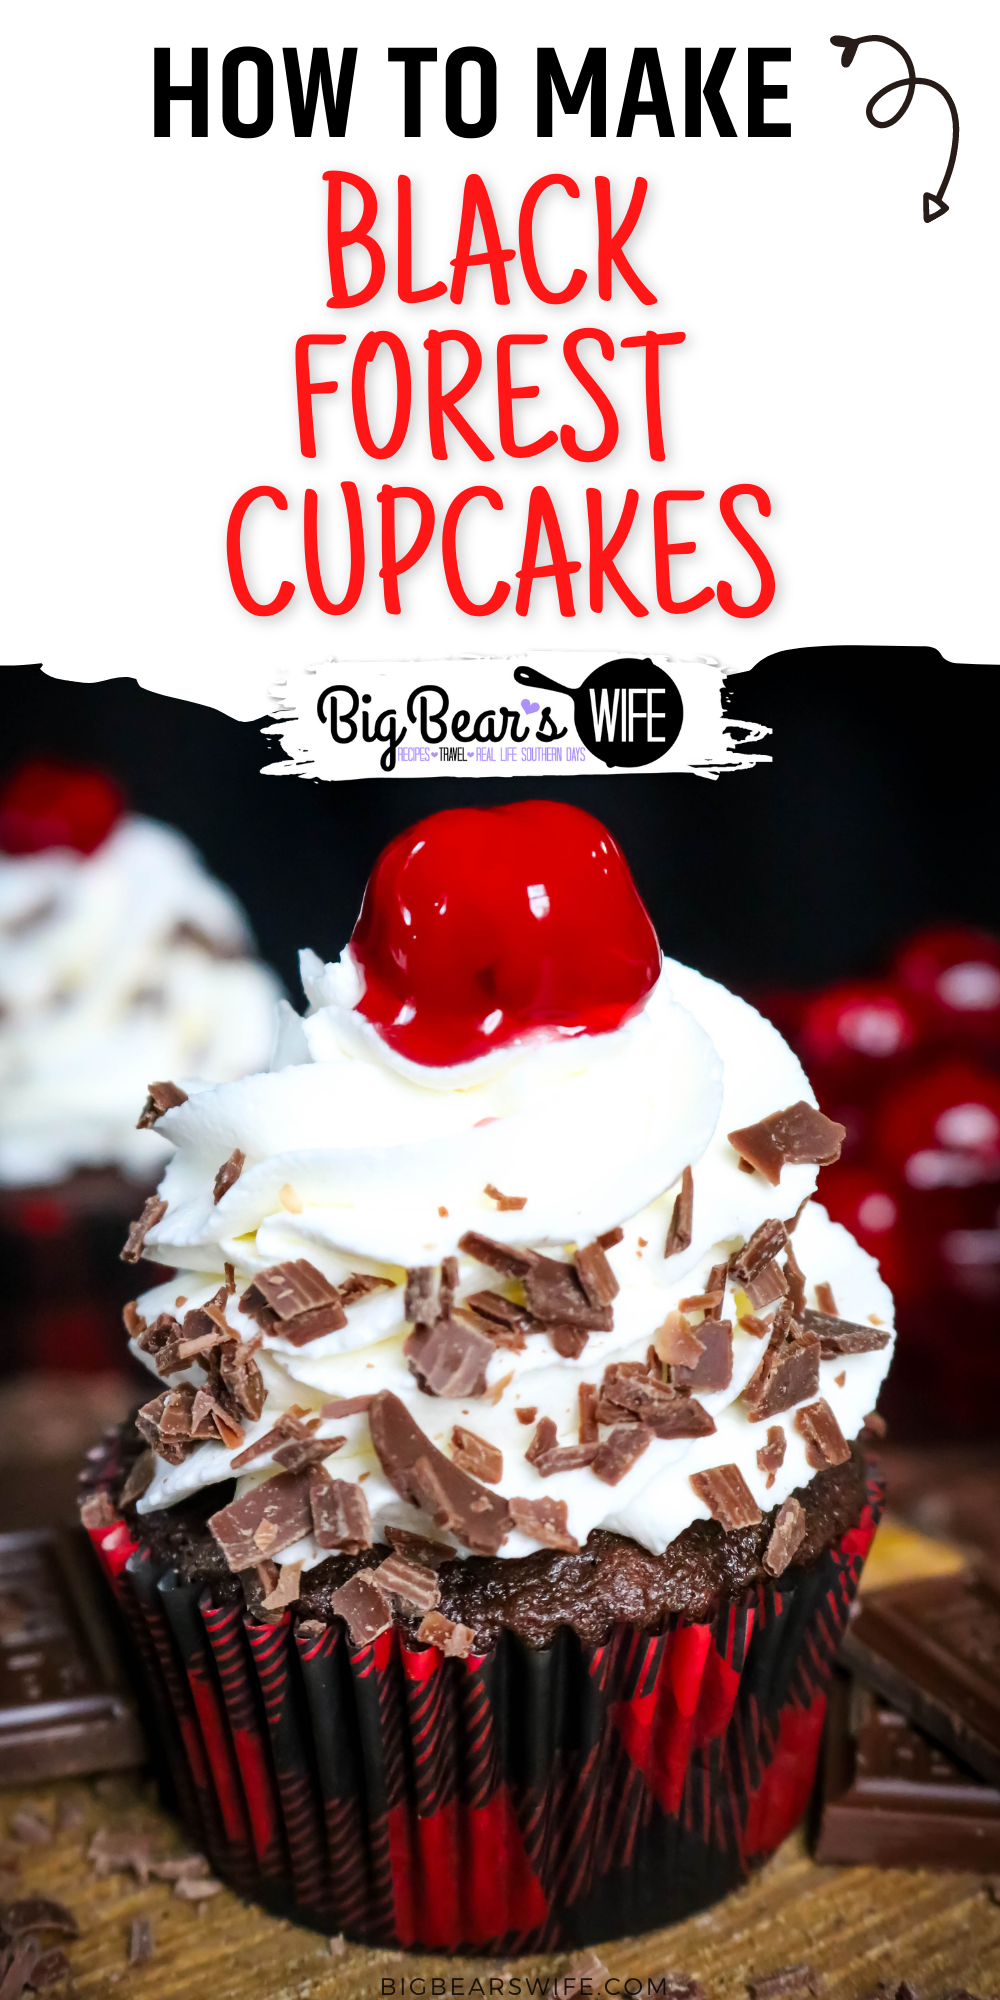 Chocolate and Cherry marry perfectly in these Black Forest Cupcakes! Chocolate cupcakes filled with cherry pie filling and topped with a homemade vanilla whipped cream frosting. via @bigbearswife